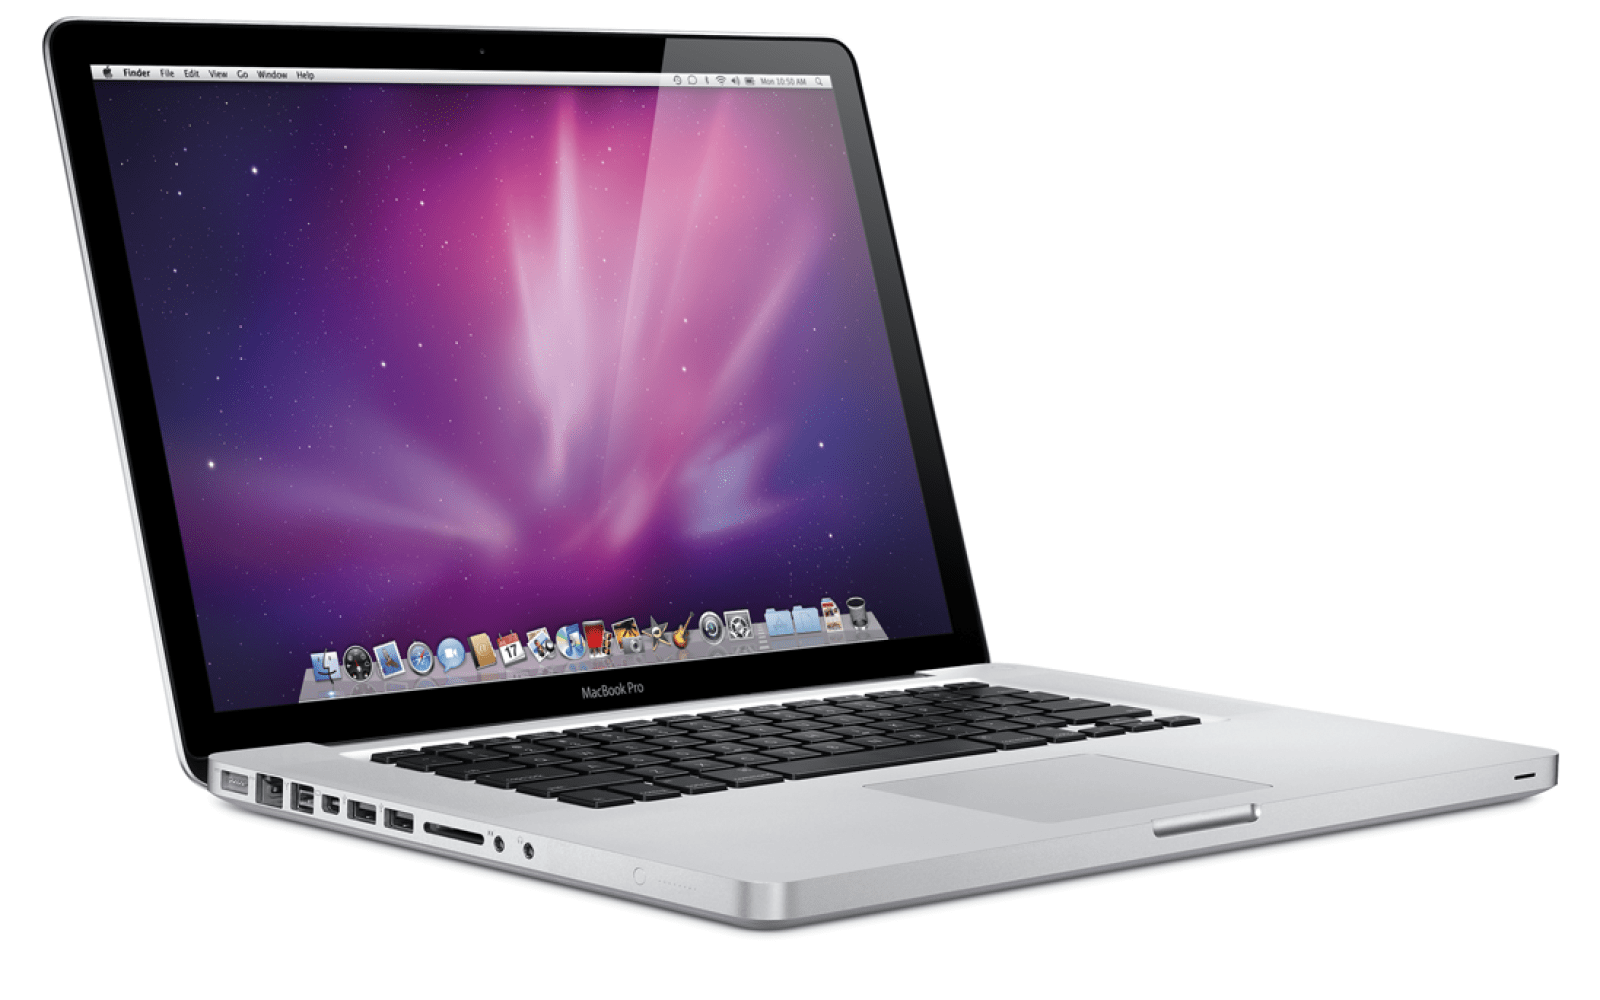 Apple faces class-action lawsuit over 2011 MacBook Pro GPU issues